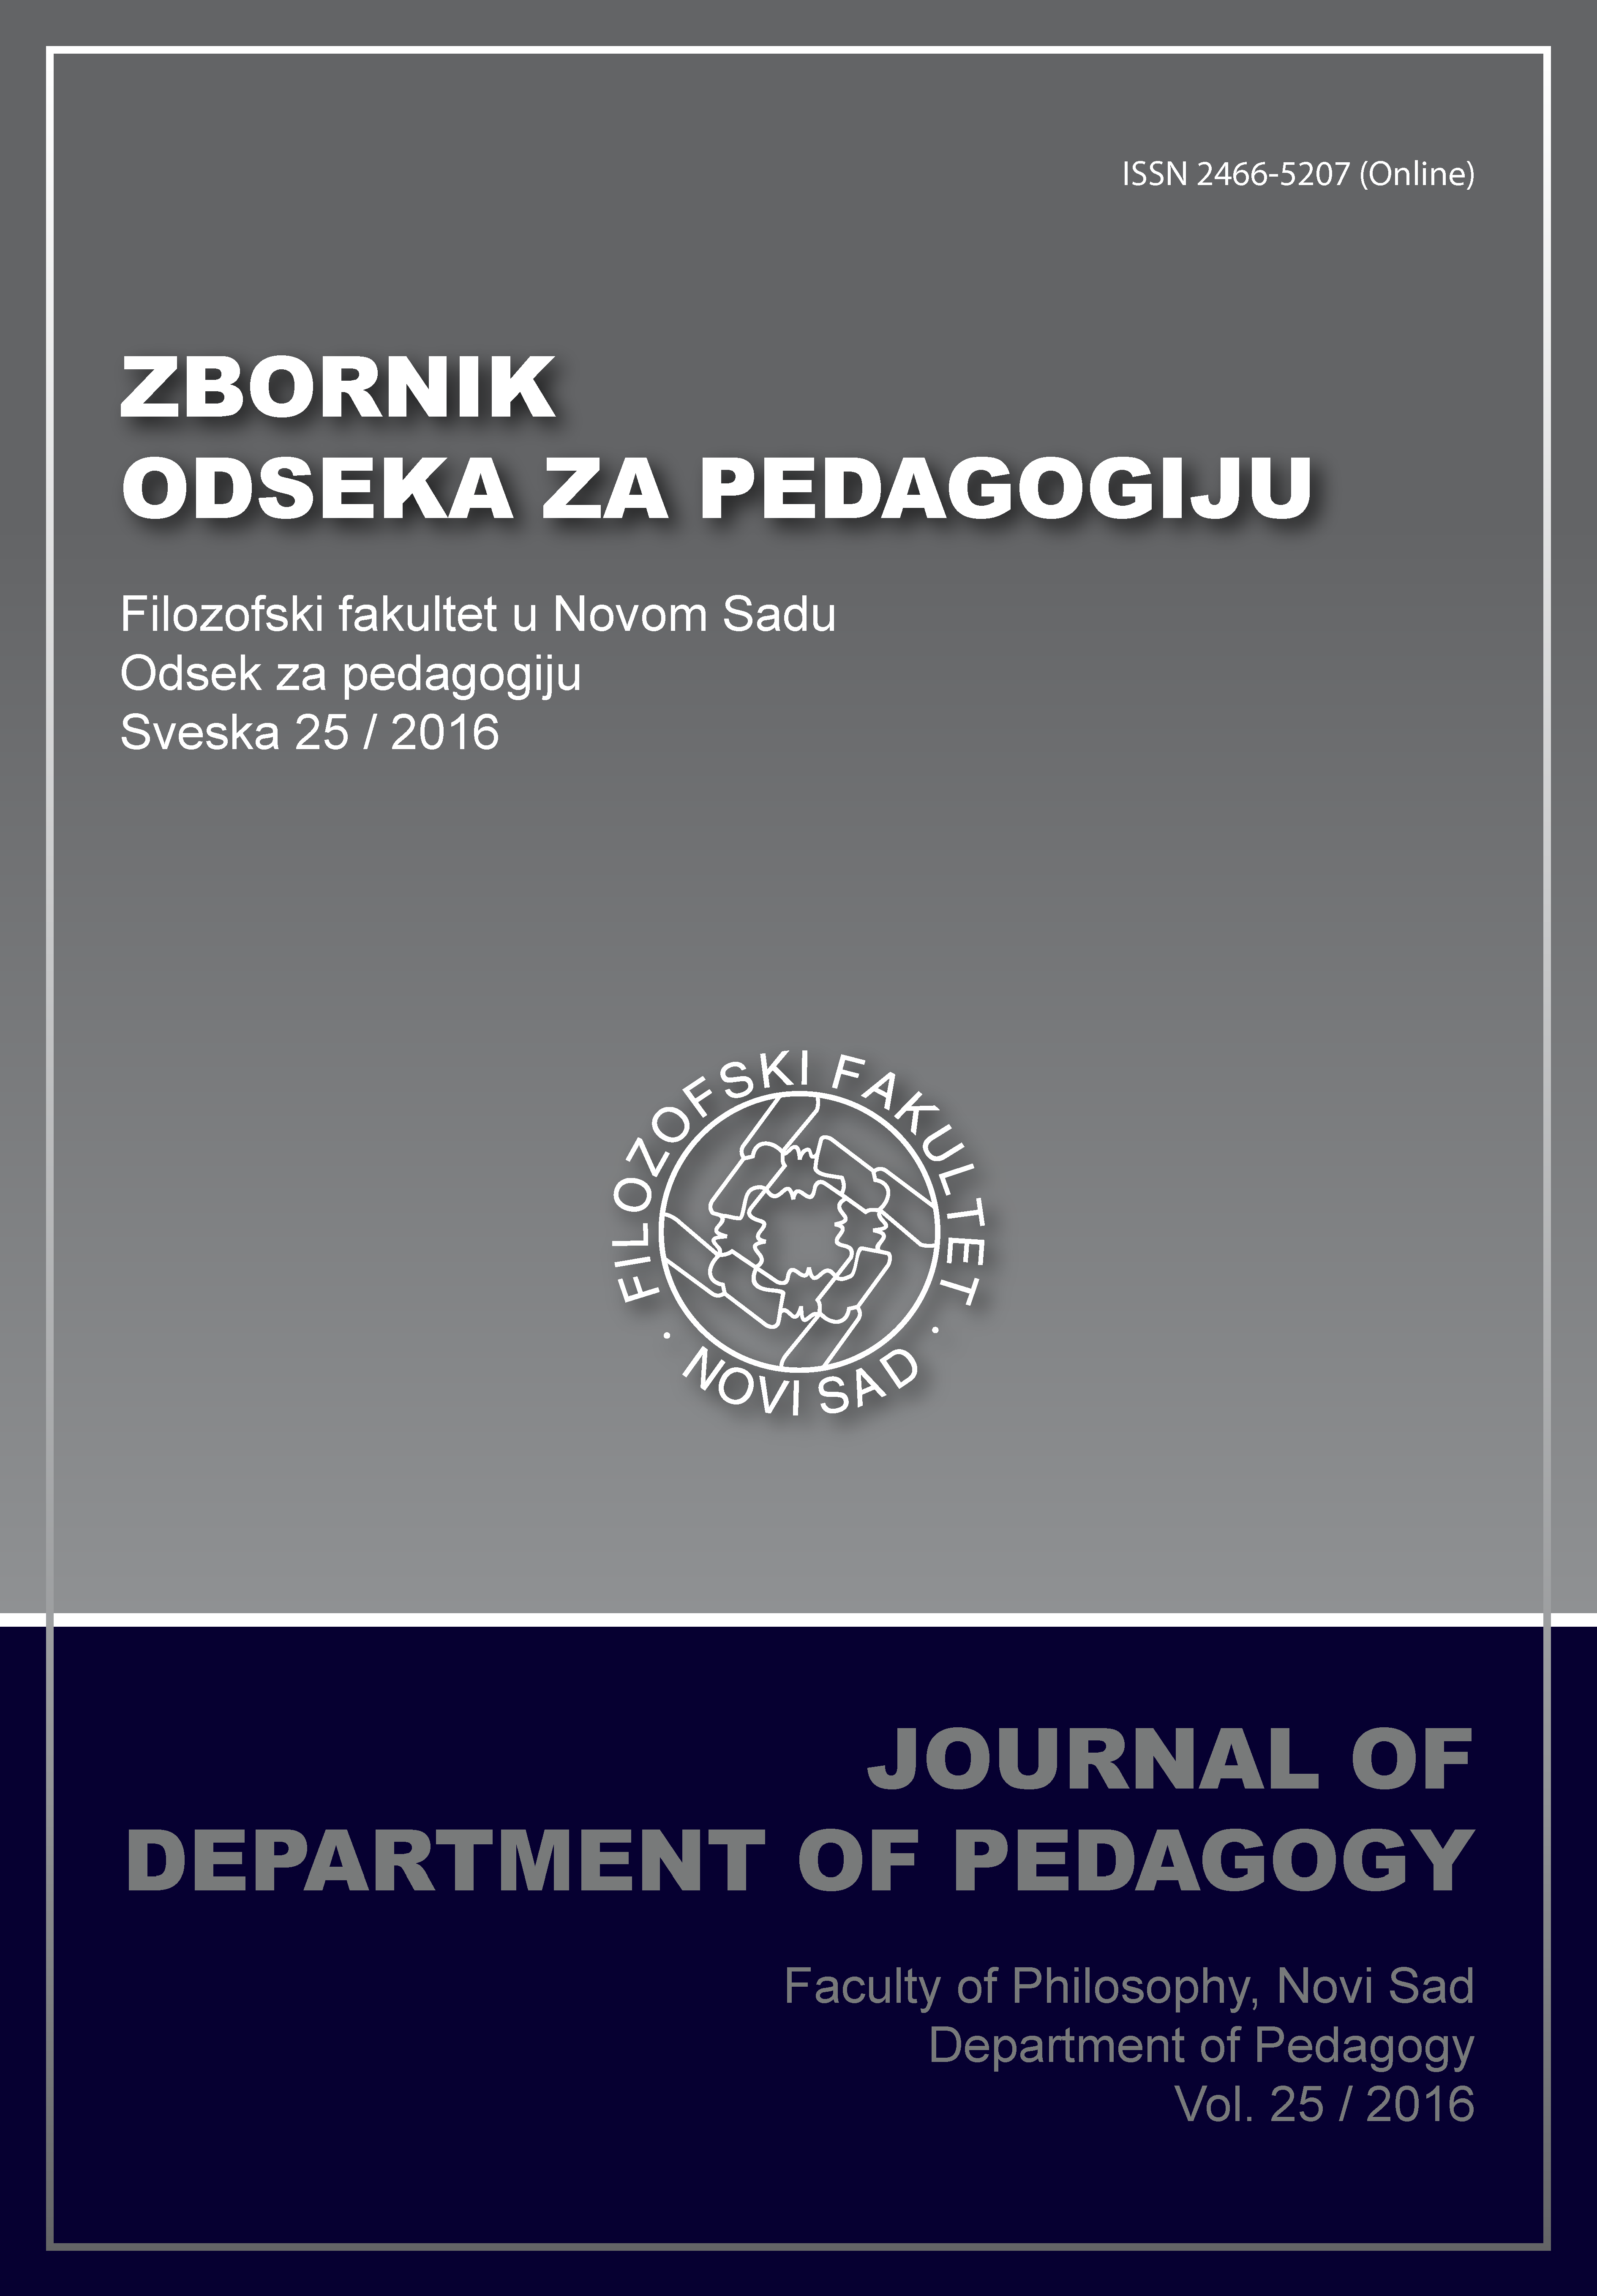 Journal of Department of Pedagogy Cover Image